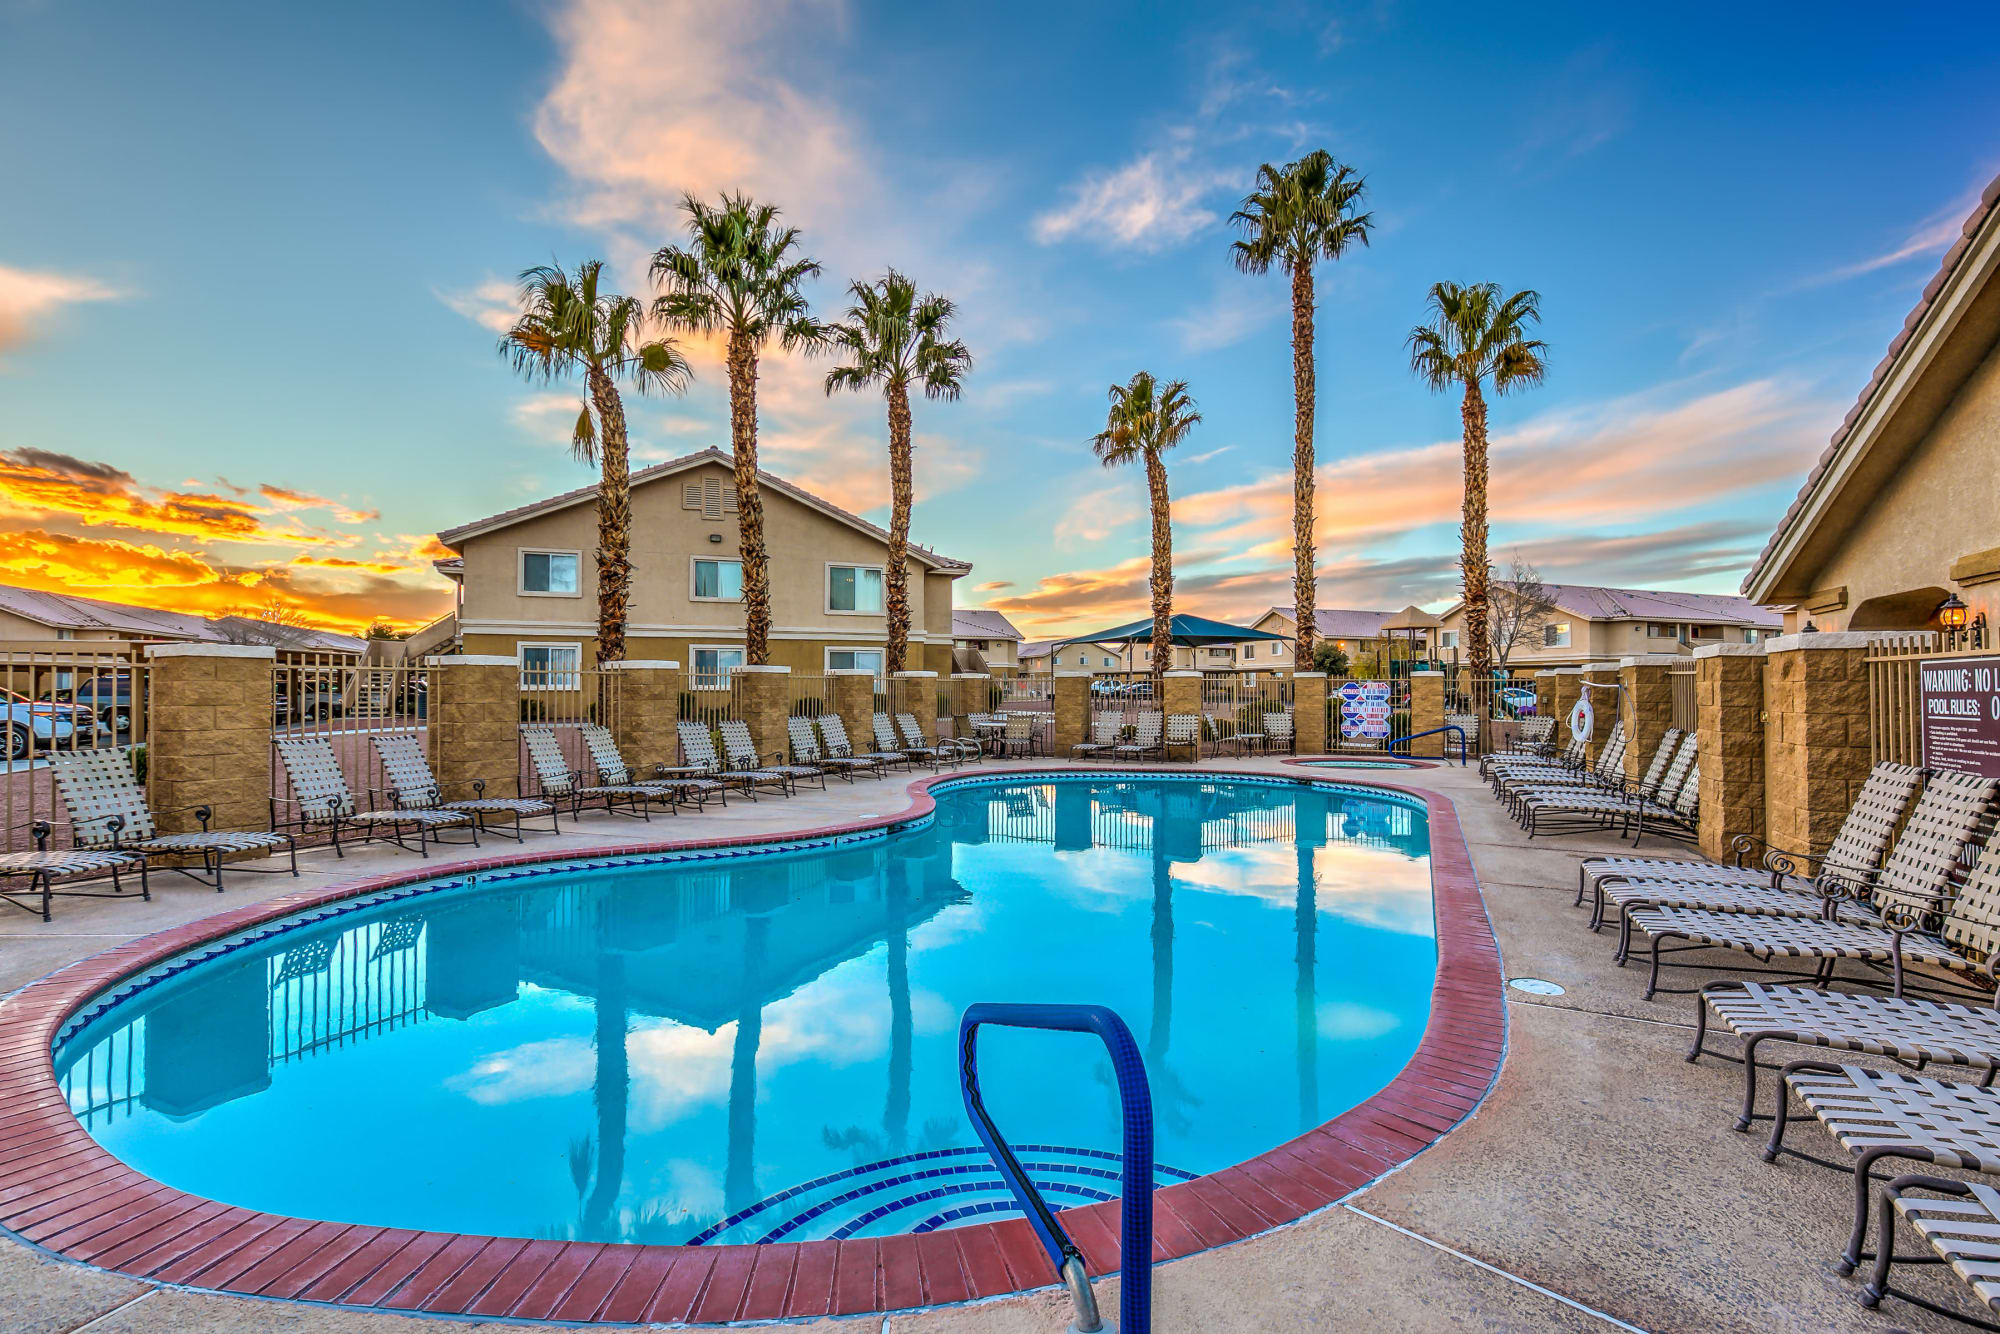 Gorgeous swimming pool area with lounge chairs at Portola Del Sol in Las Vegas